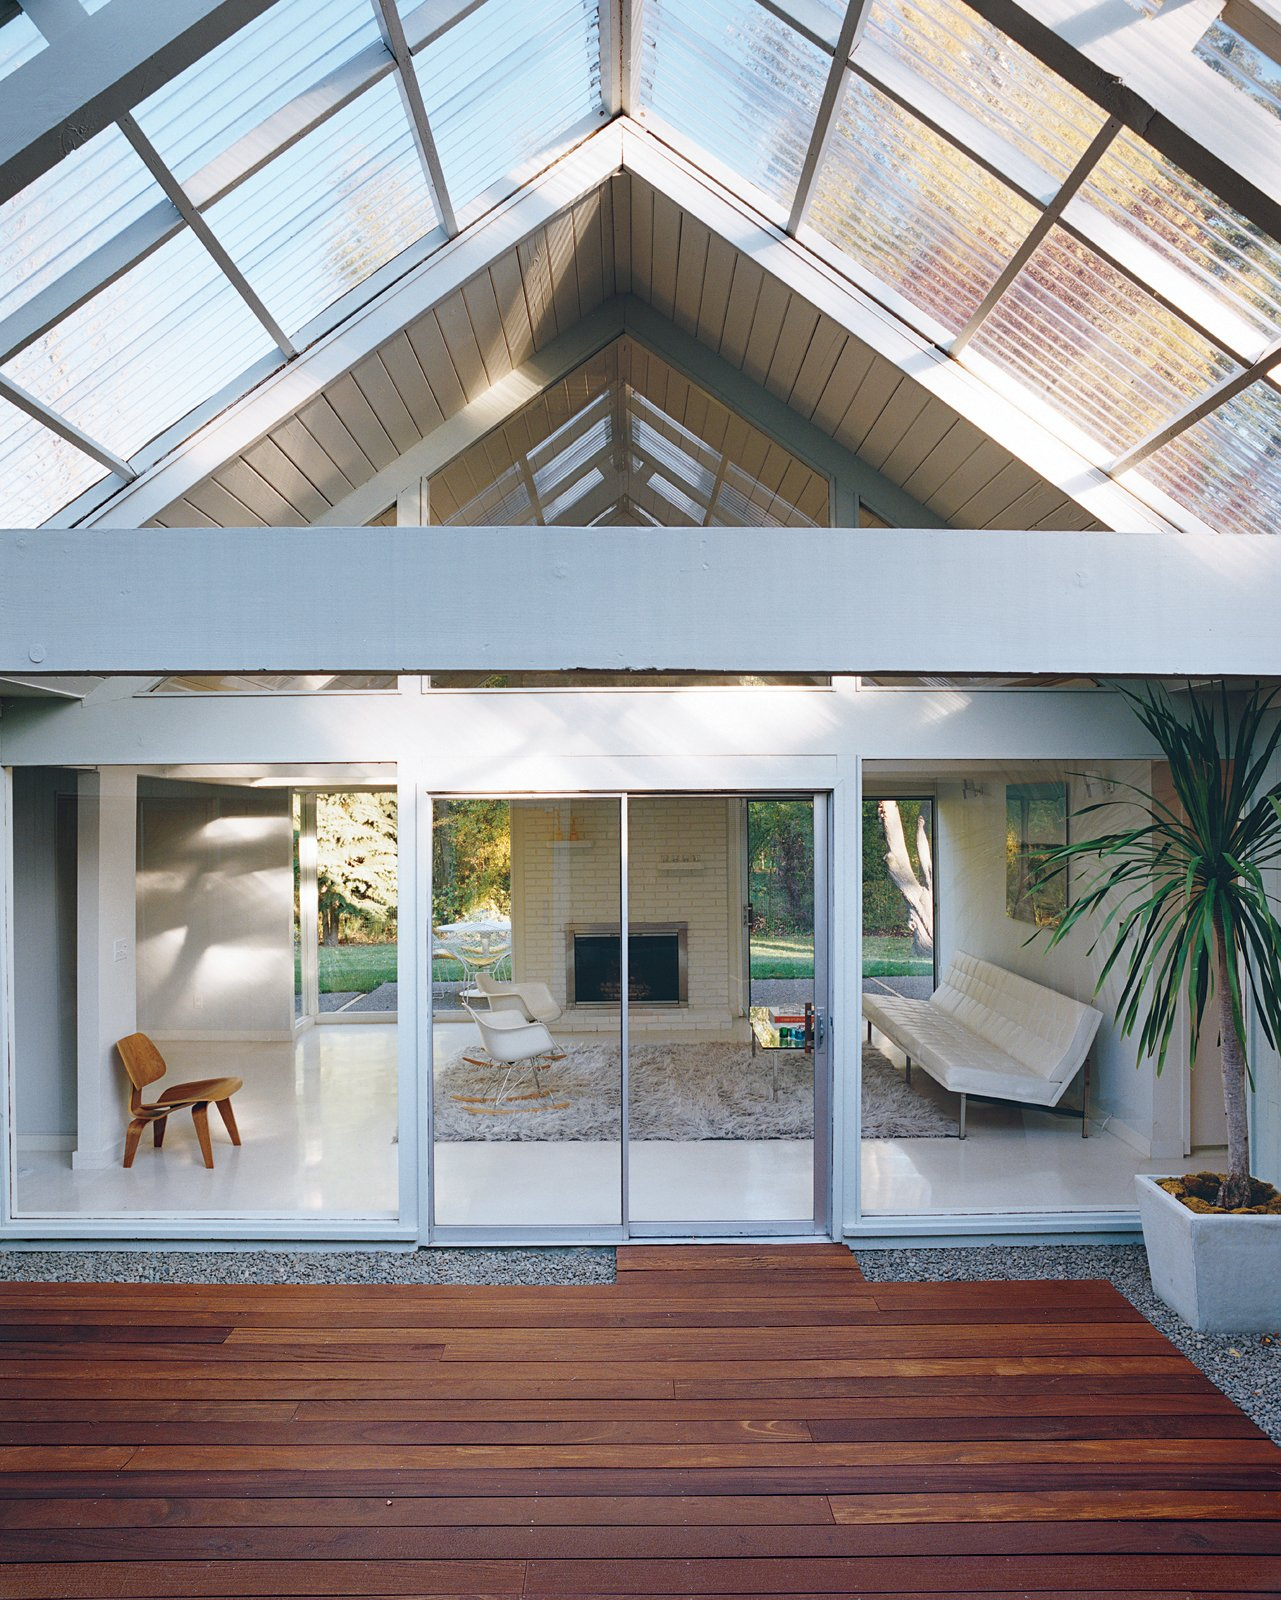 Outdoor, Large Patio, Porch, Deck, and Wood Patio, Porch, Deck The literal and figurative centerpiece of the house is the atrium, through which light filters into the rest of the house year-round.  Photo 10 of 15 in A Midcentury Modern Home in Southwest Portland